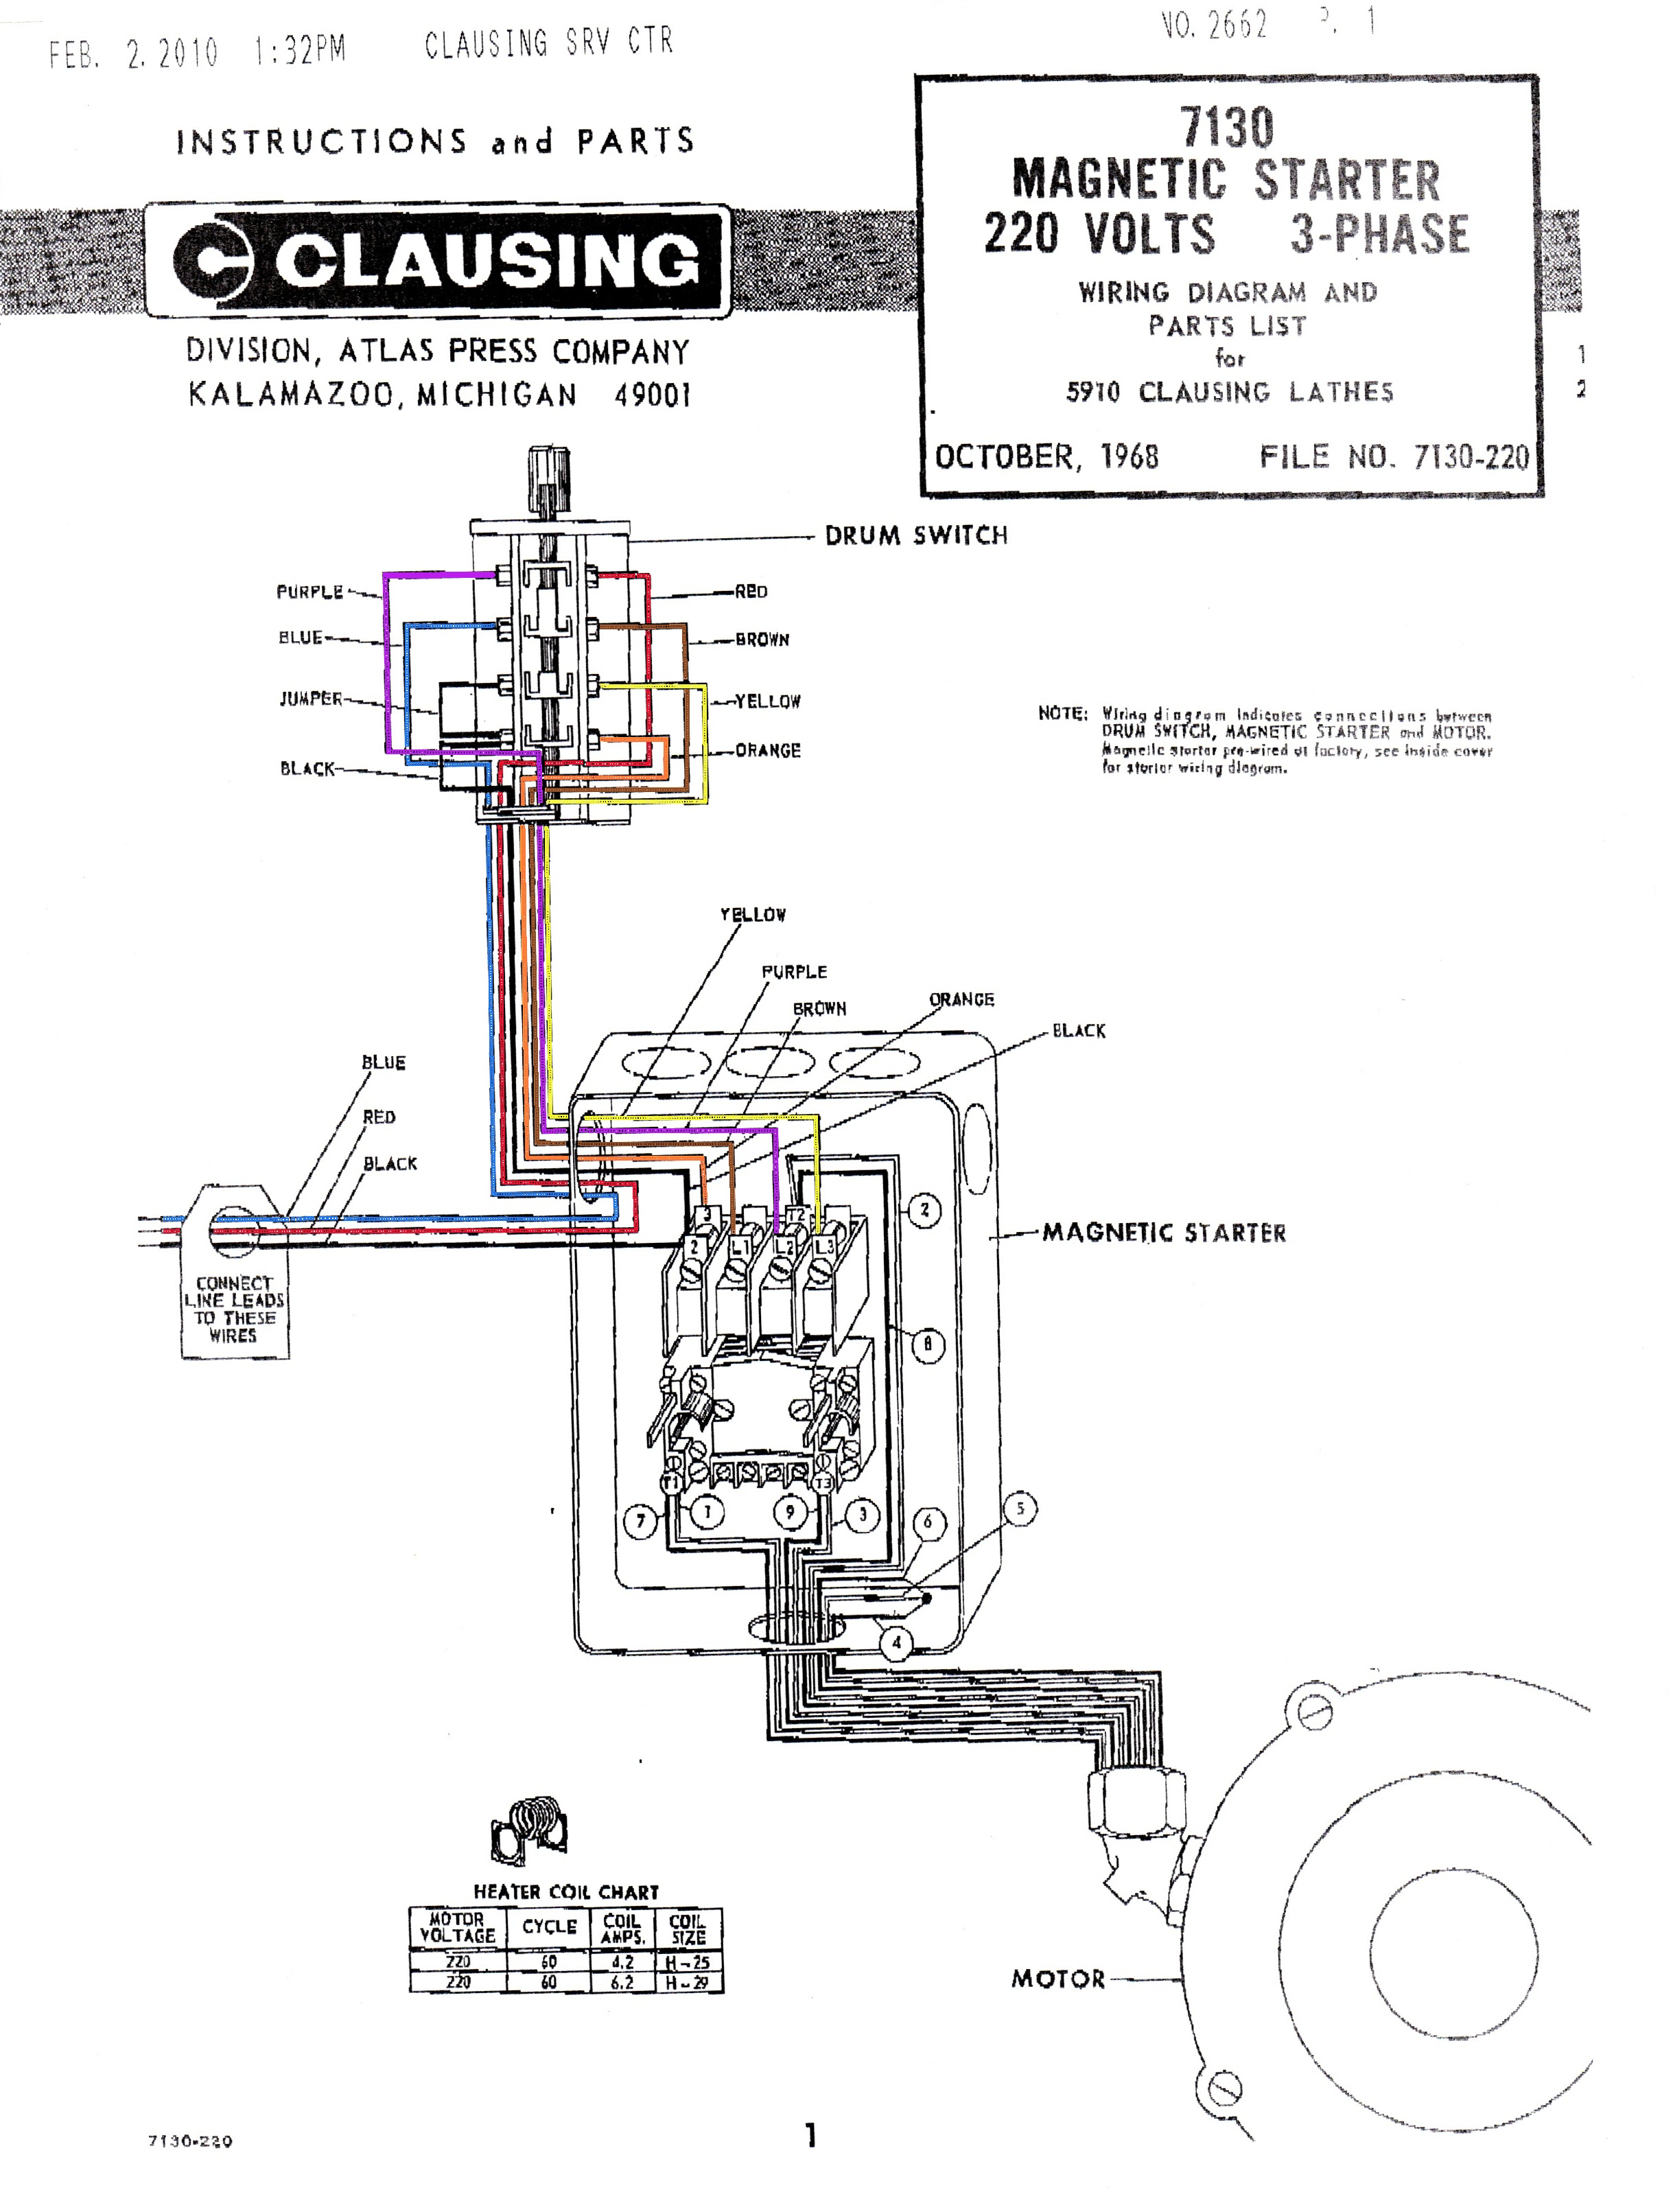 diagram] s10 starter wiring diagram full version hd quality wiring diagram  - pediagram.assunzionedimaria.it  pediagram.assunzionedimaria.it